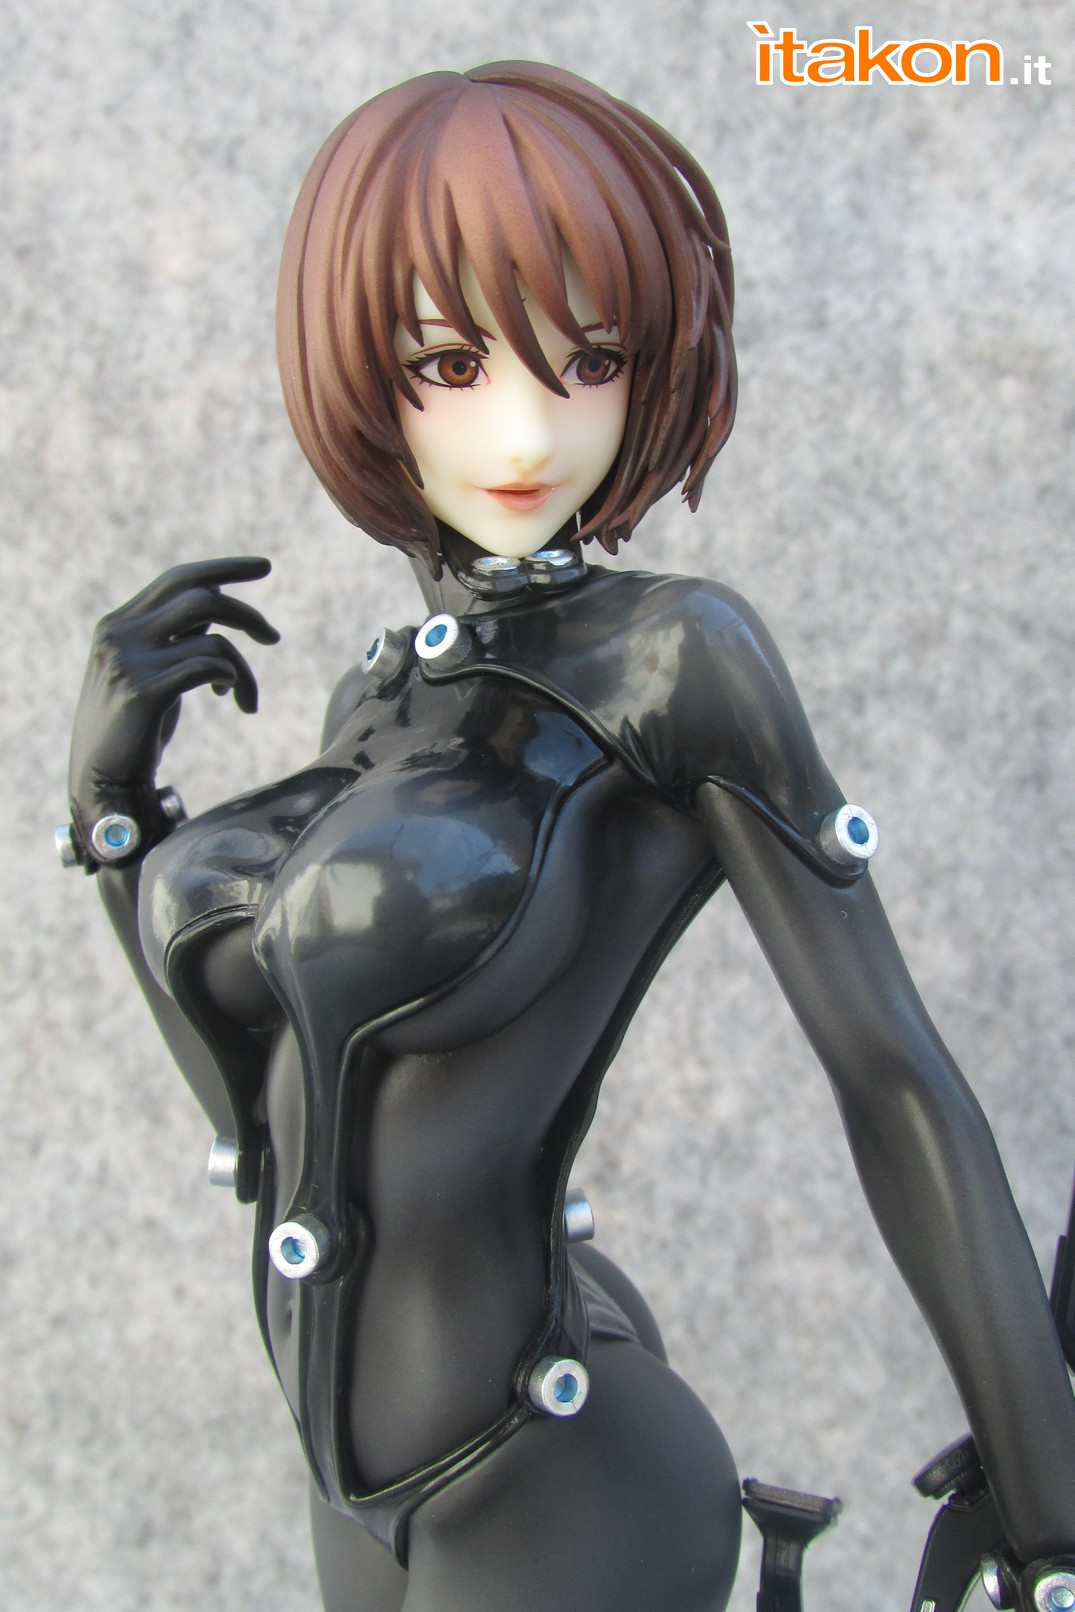 Link a Recensione review Yamasaki Anzu X Shotgun ver. da Gantz 0 di Union Creative International Ltd Itakon.it 29